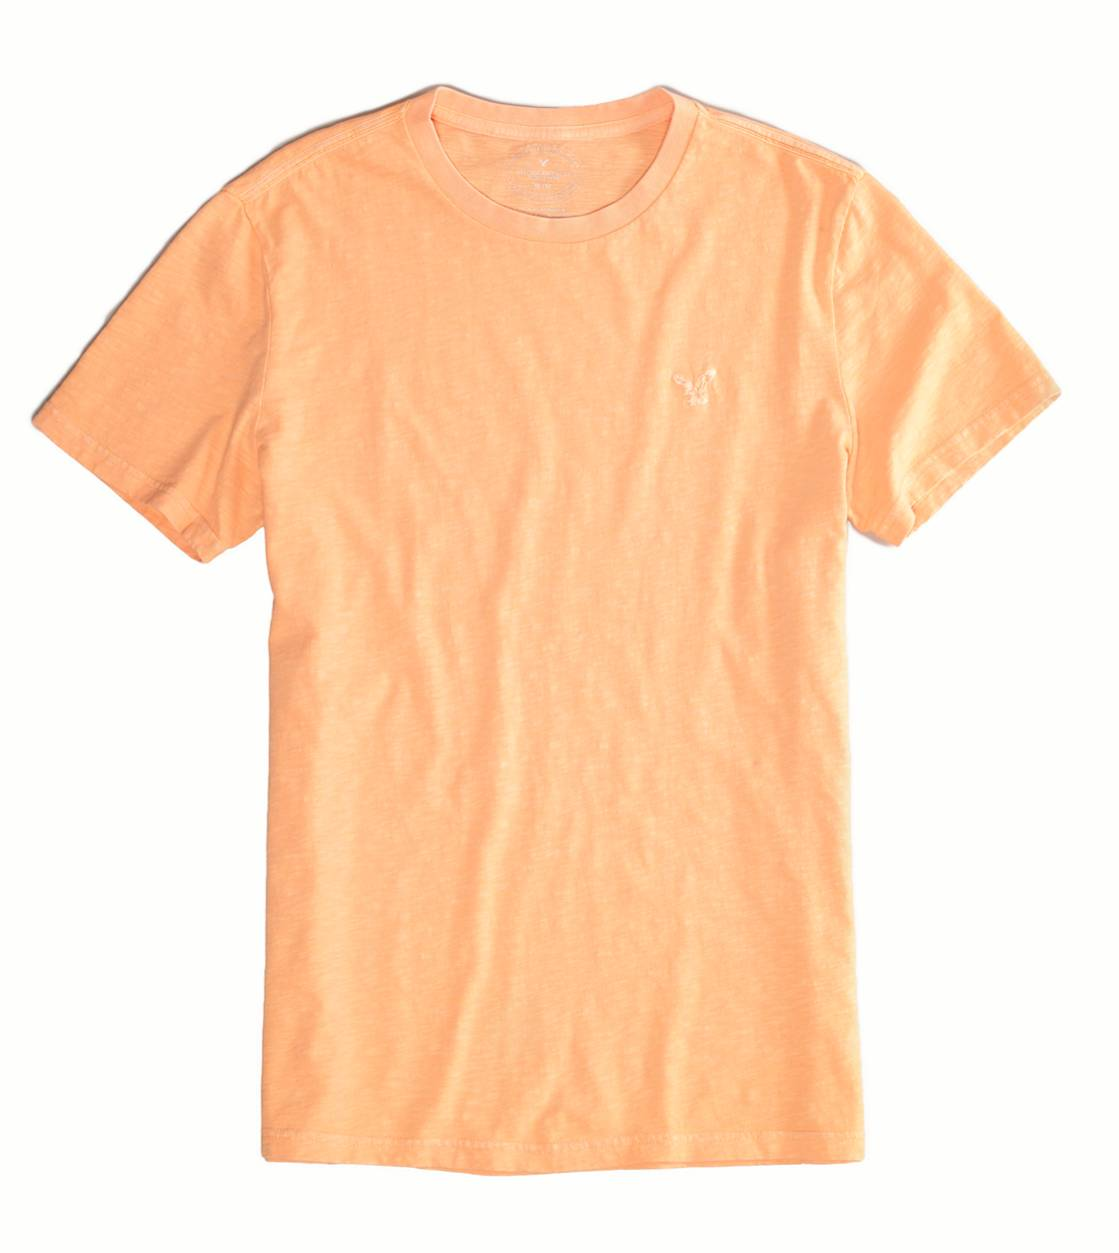 Orange Pop AE Legend Crew T-Shirt